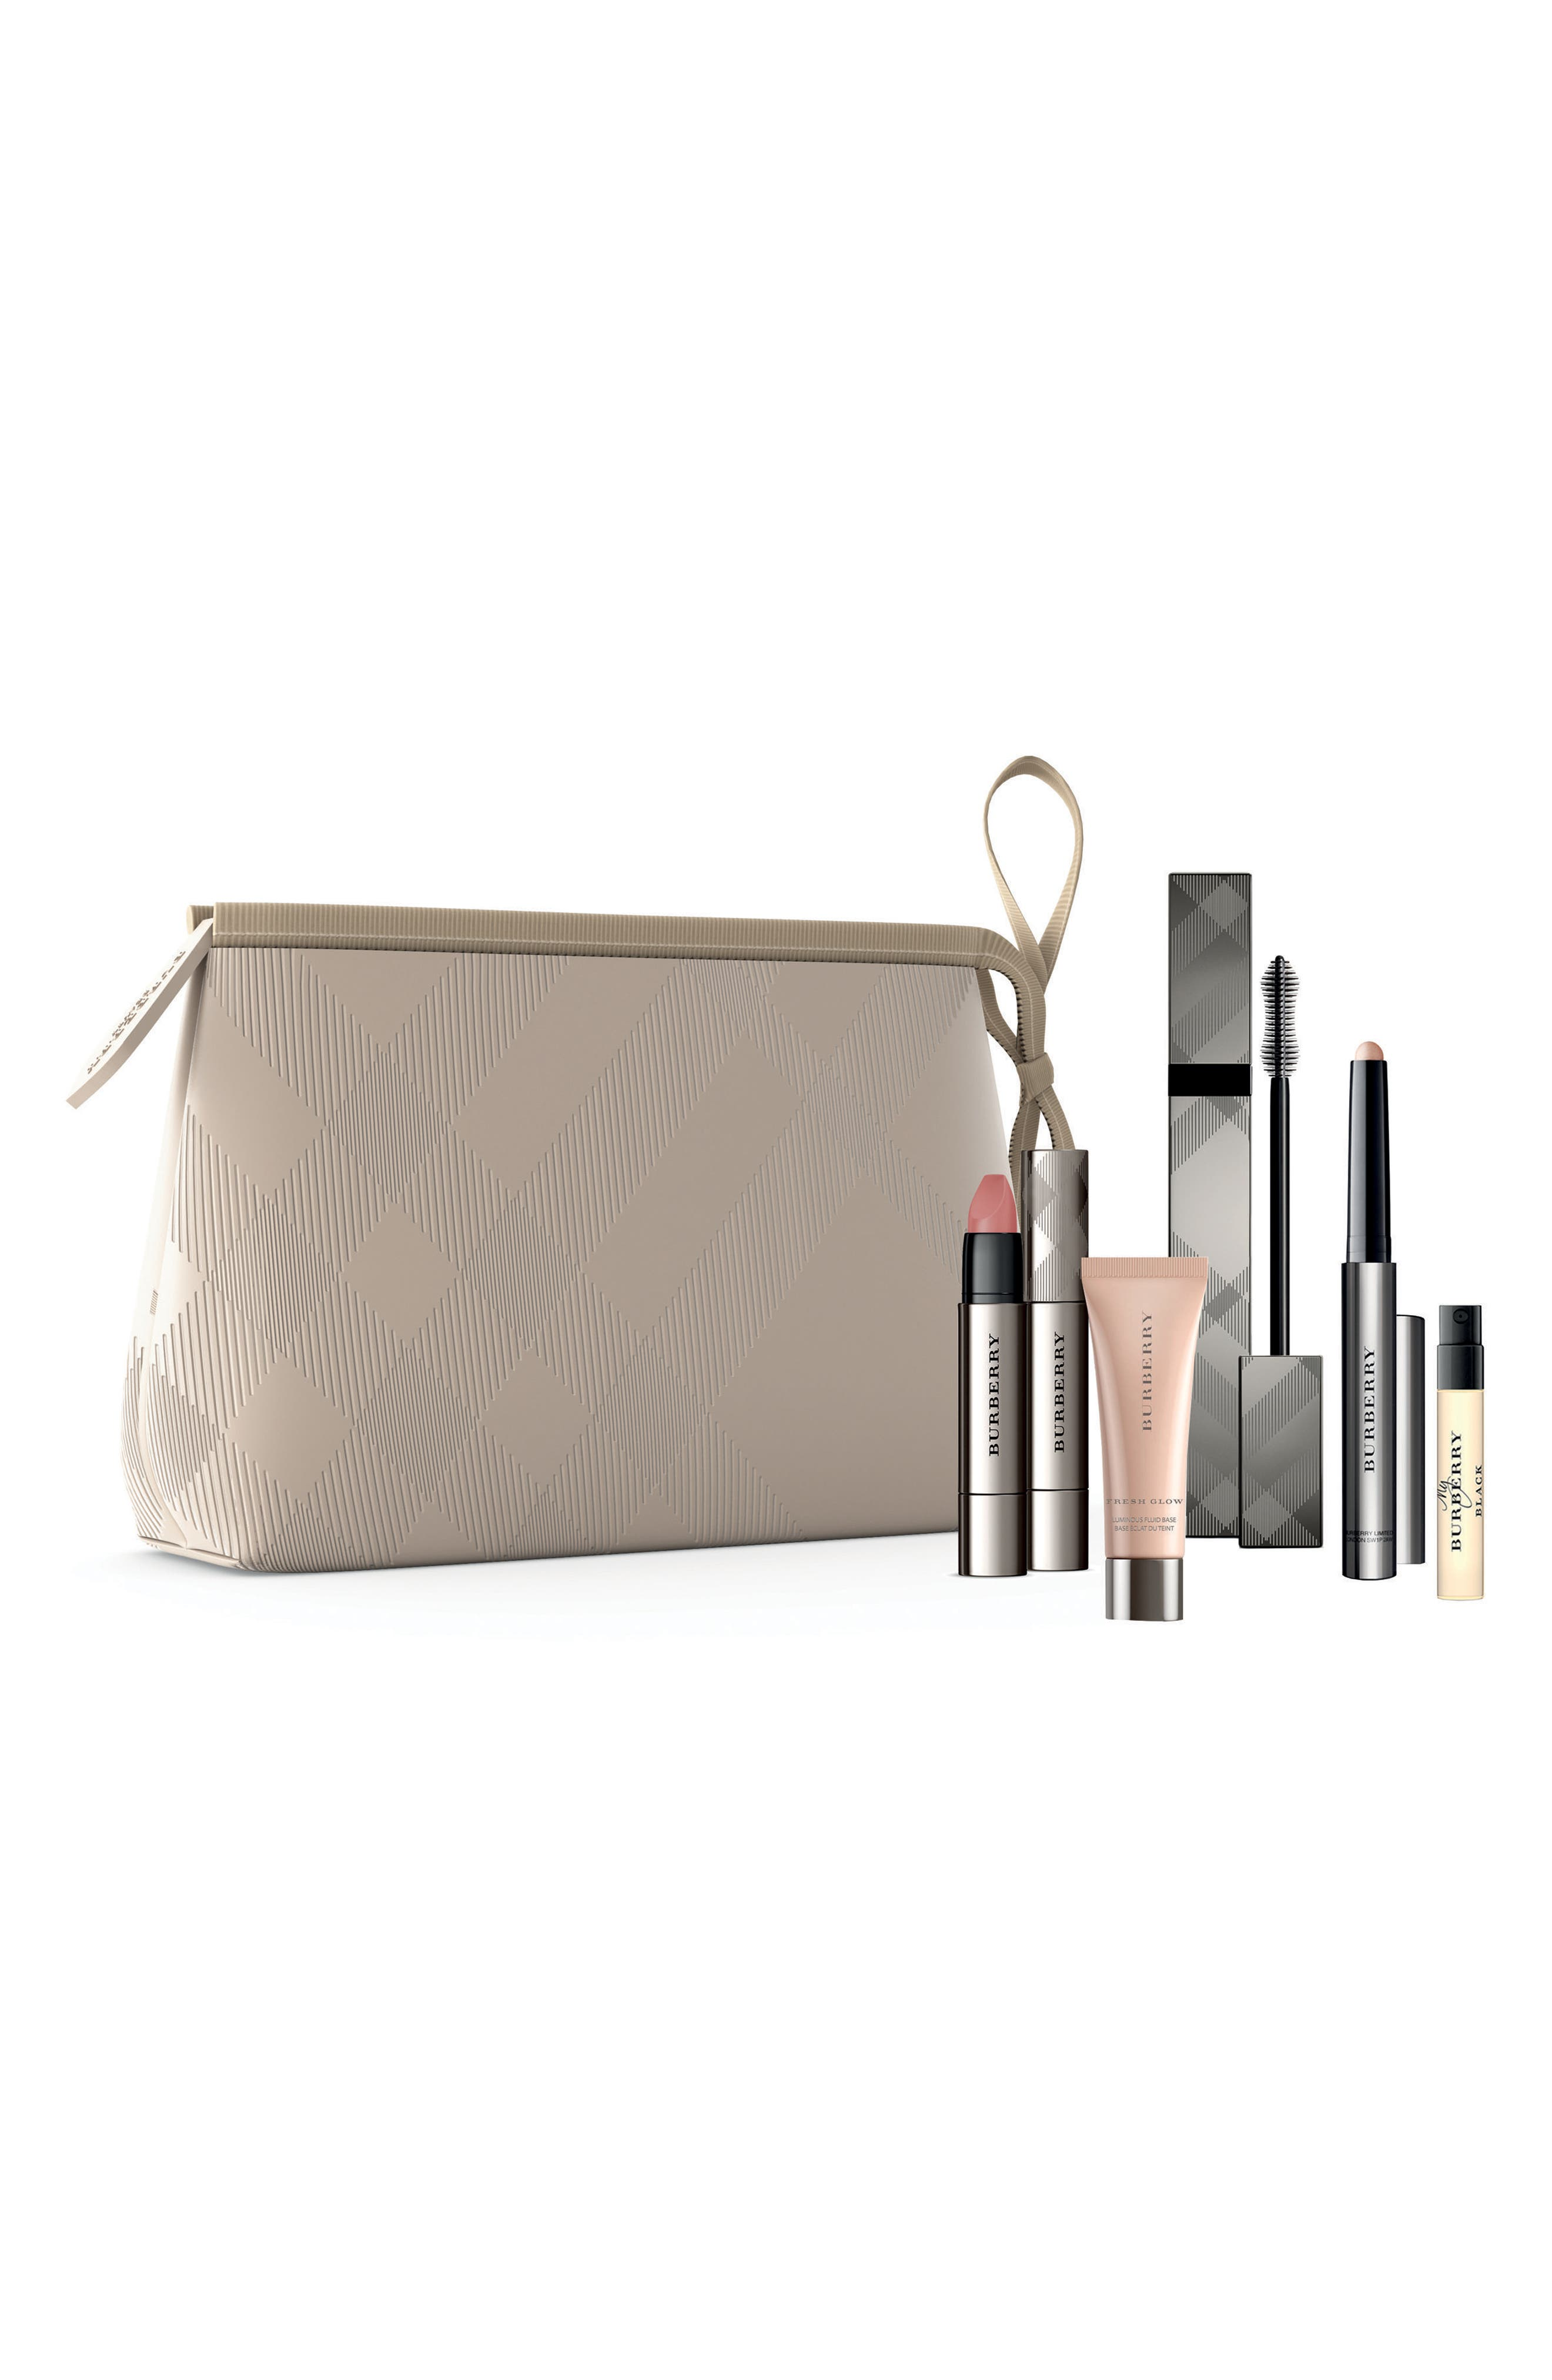 Burberry Beauty Essentials Set ($100 Value)